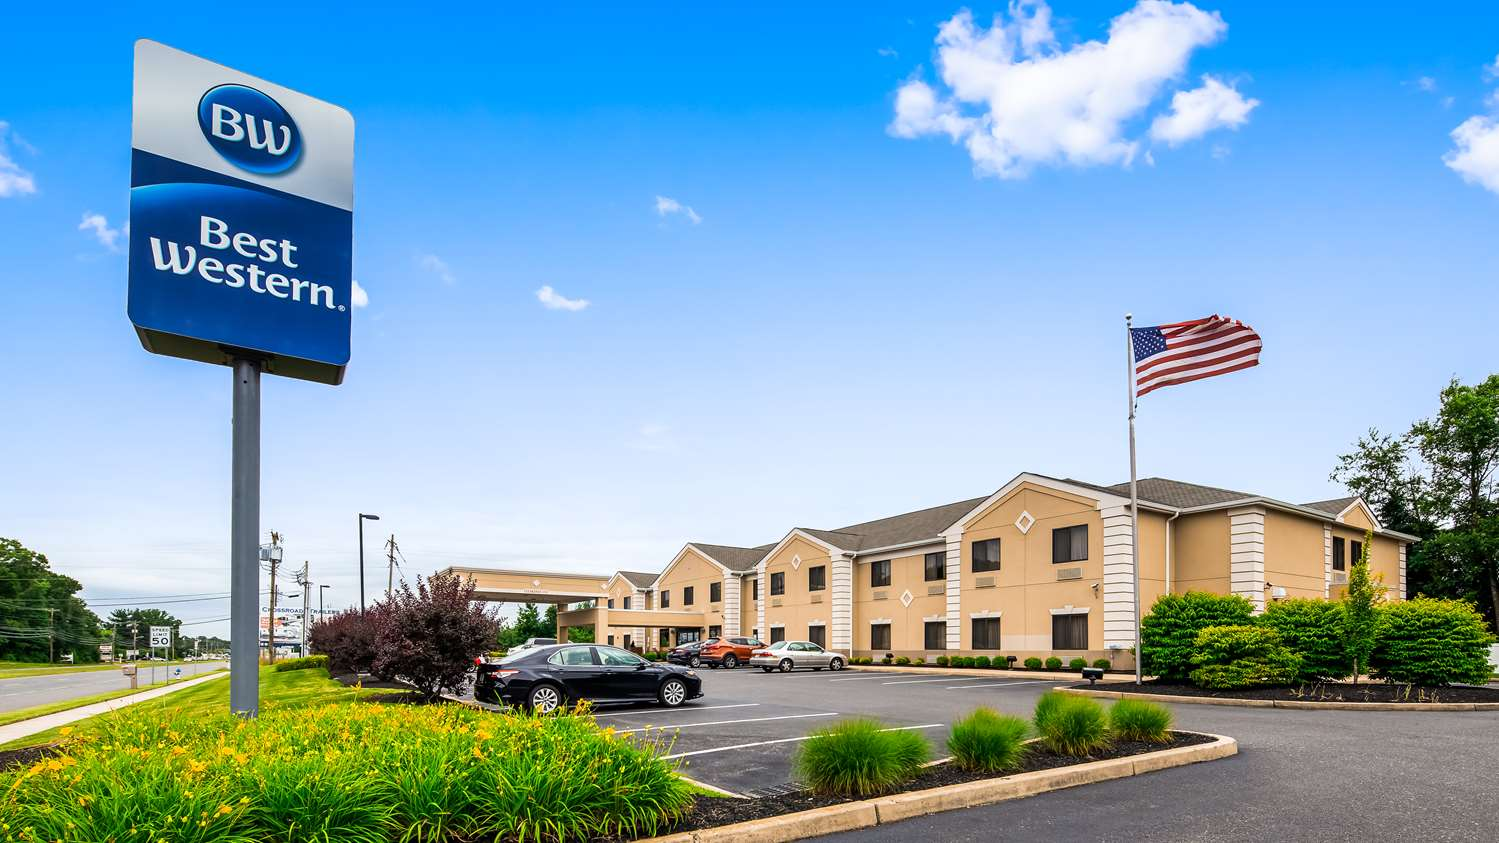 Best Western Hotel Williamstown Nj